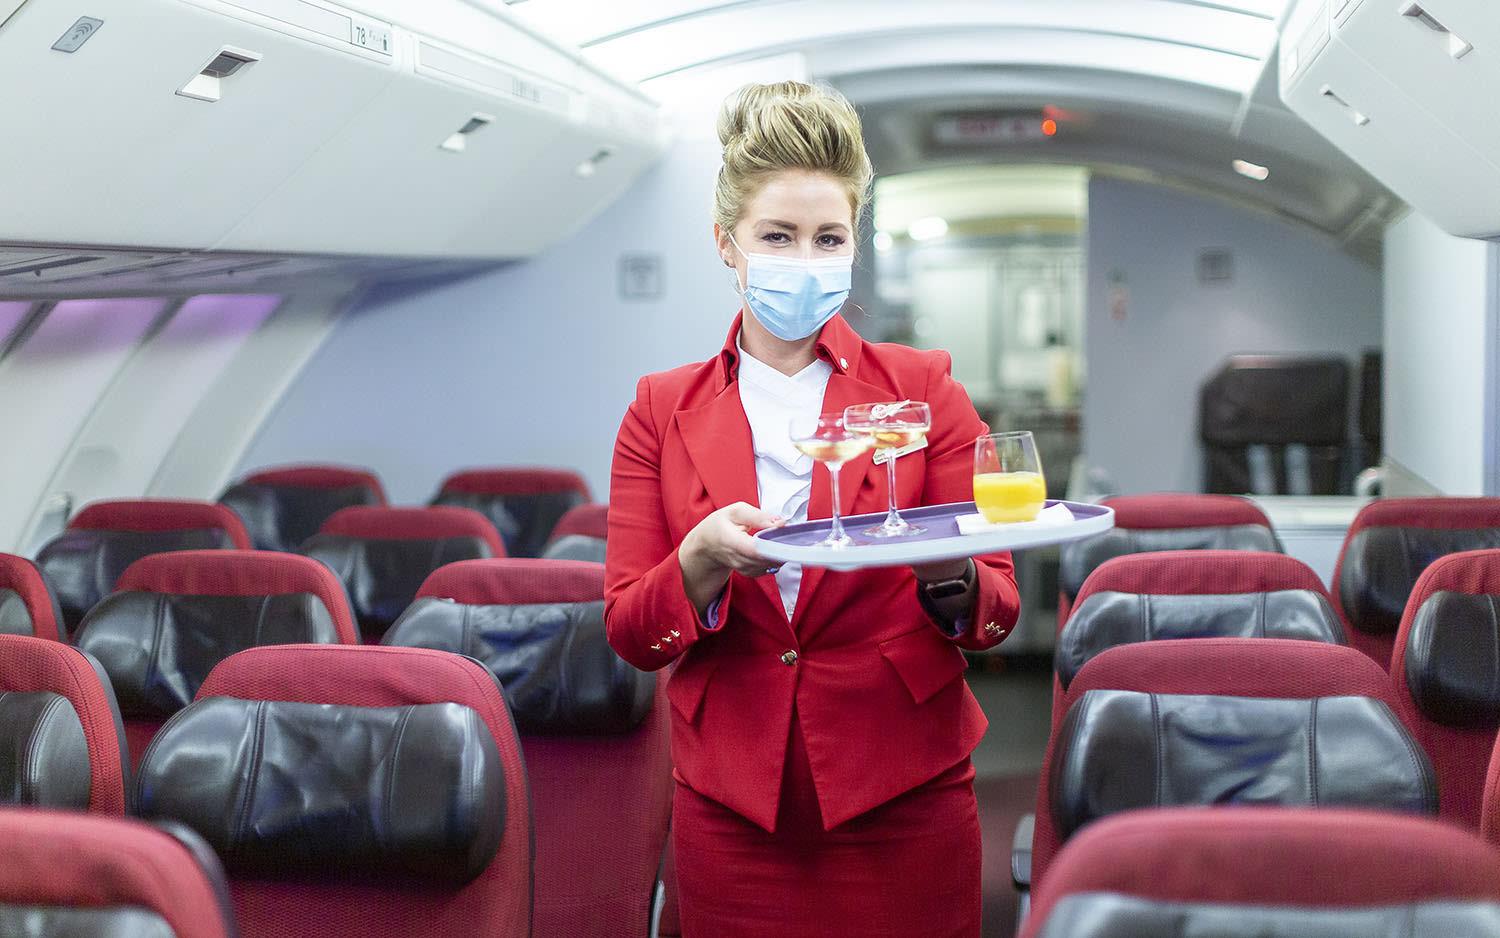 A member of cabin crew stands in the aisle on a Boeing 747 holding a tray of drinks